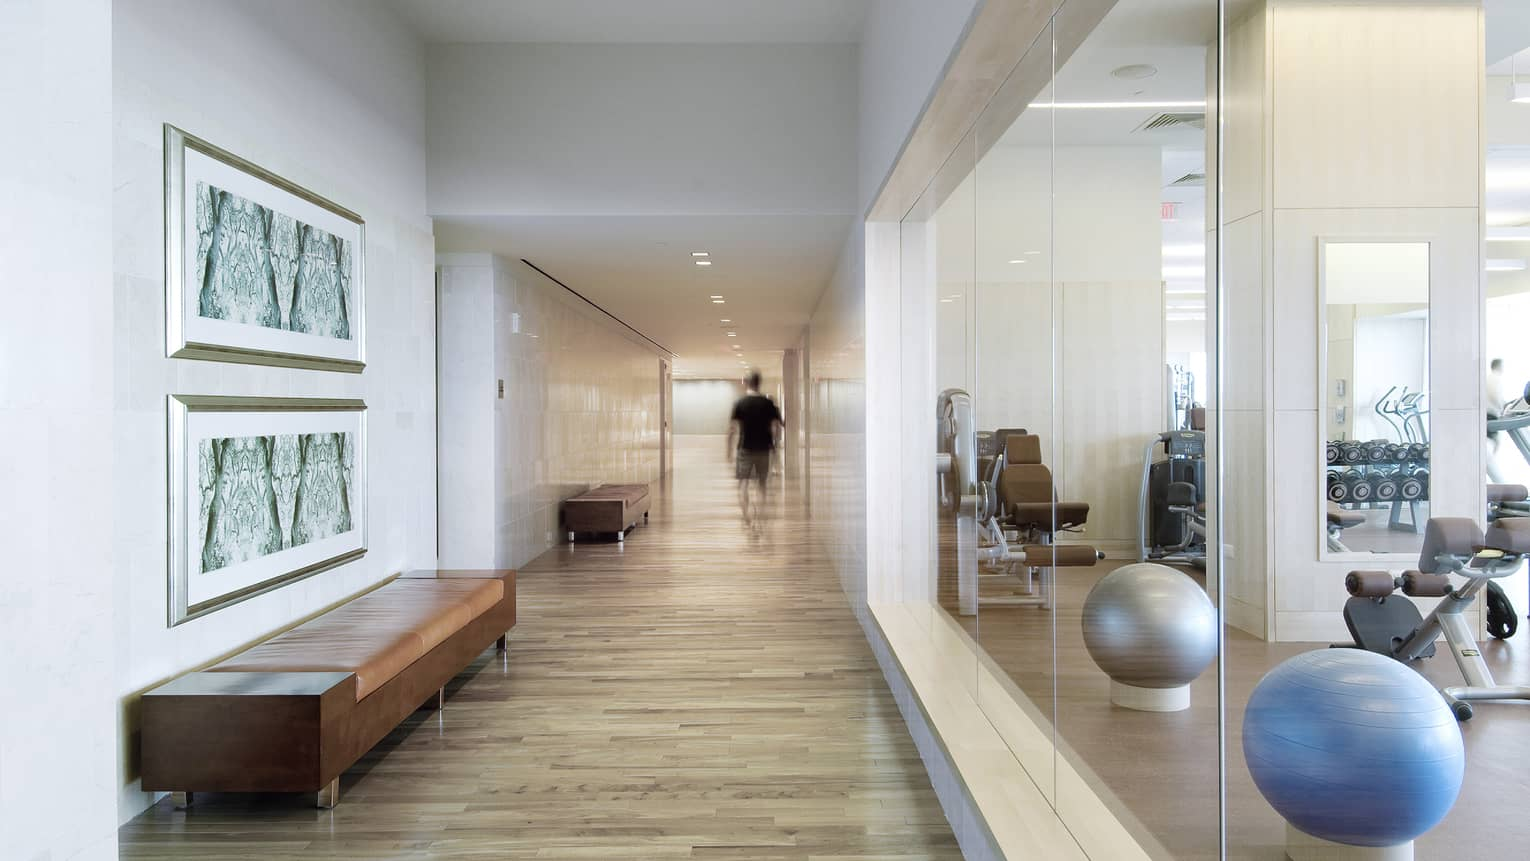 Fitness Centre hallway with bench, wood floors, glass window, pilates balls